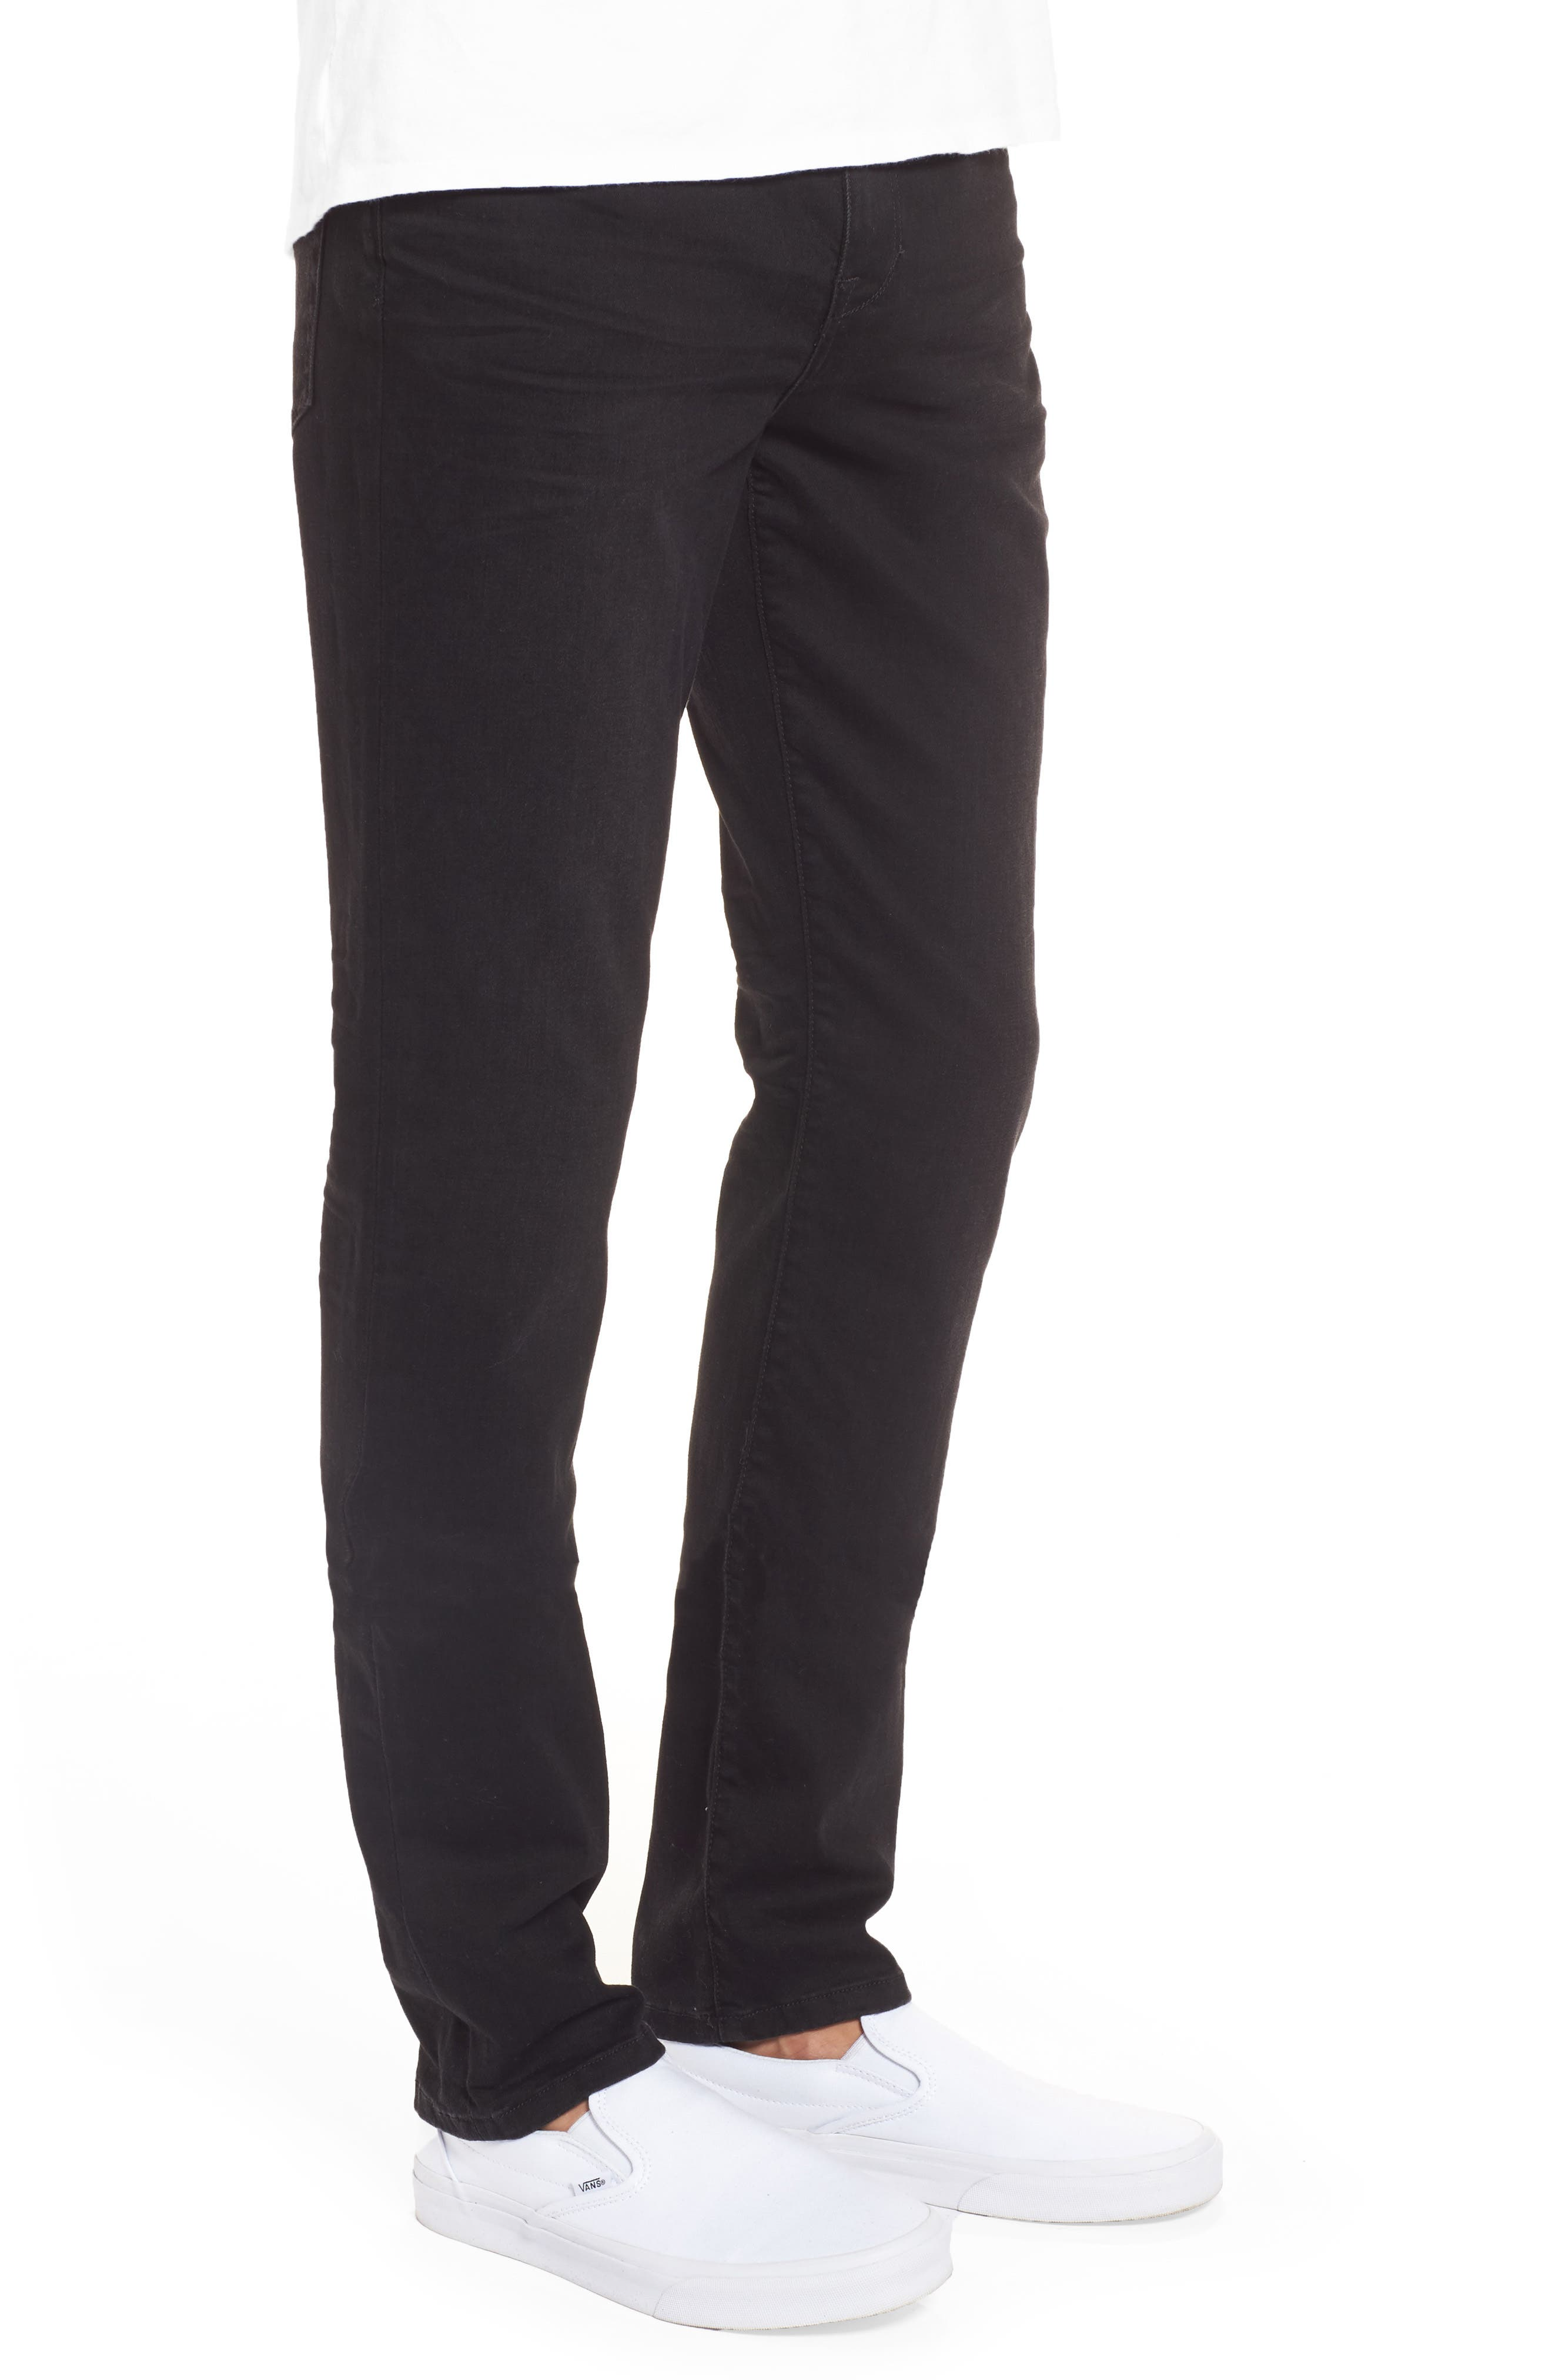 Soder Slouchy Skinny Jeans,                             Alternate thumbnail 3, color,                             Diggie